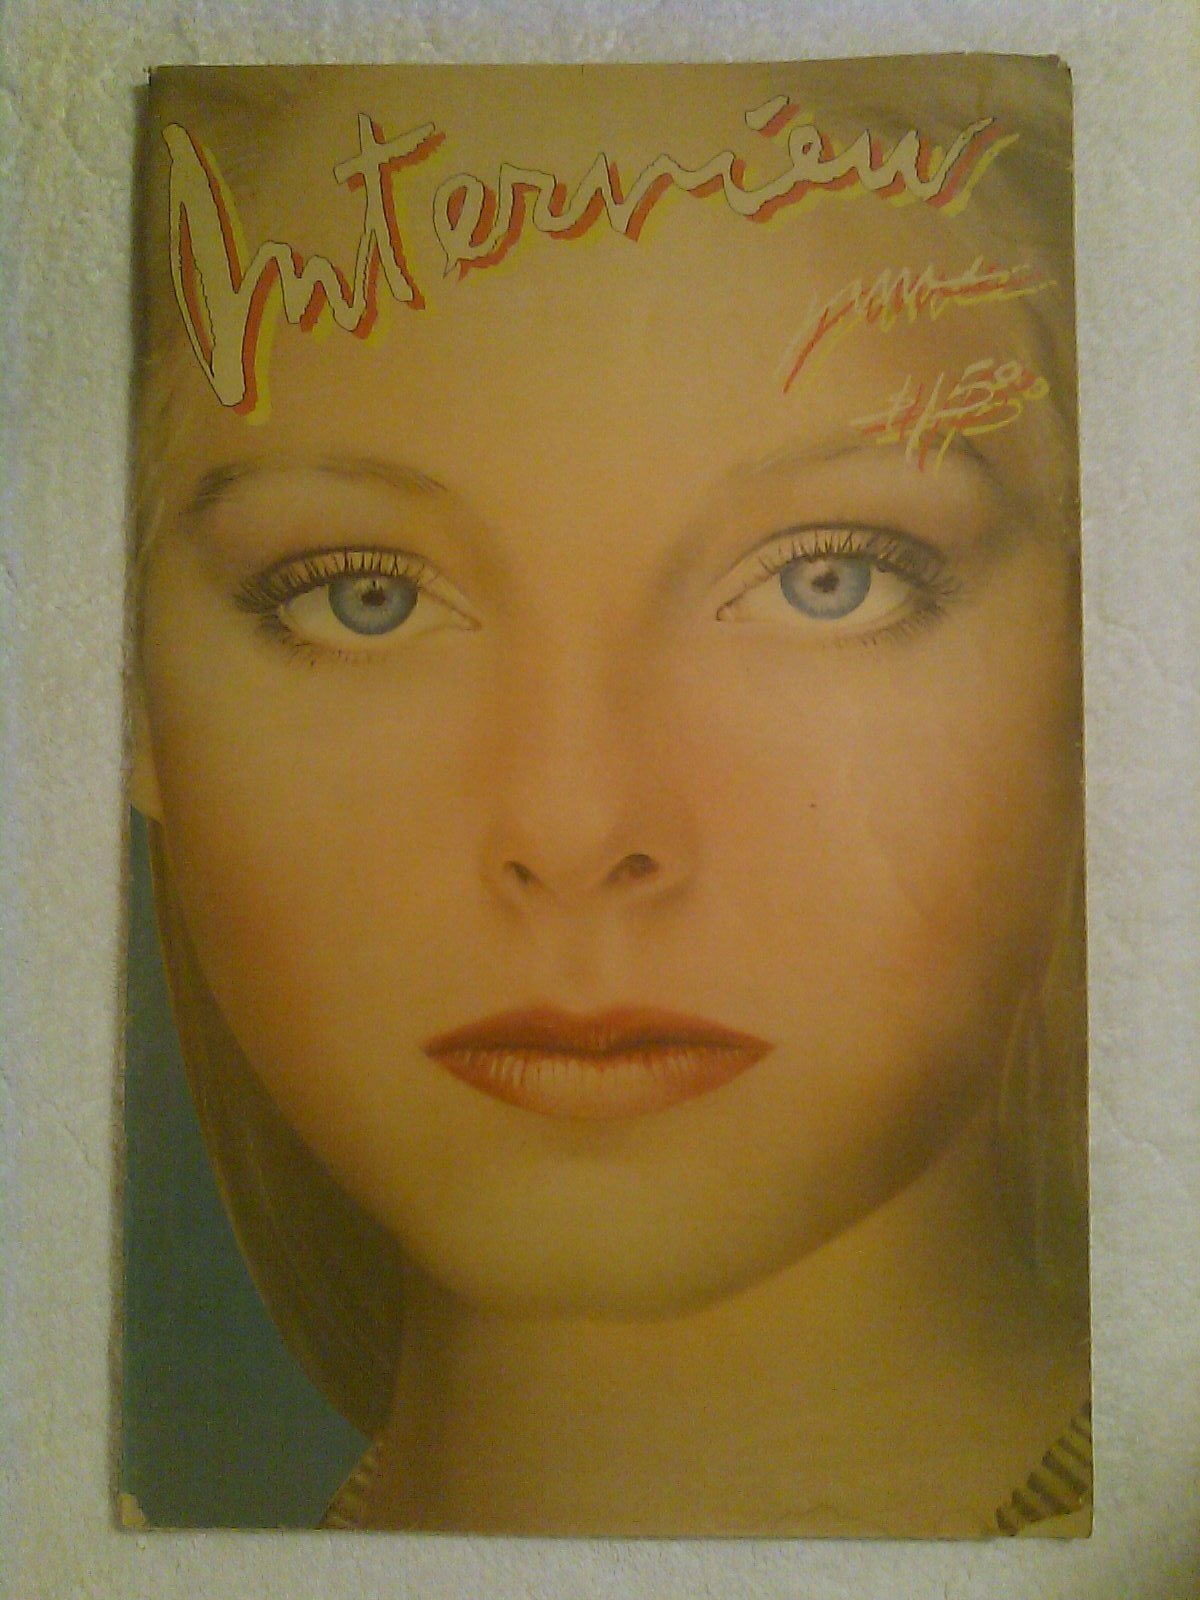 interview magazine jodie foster front cover vol x no 6 1980 andy warhol